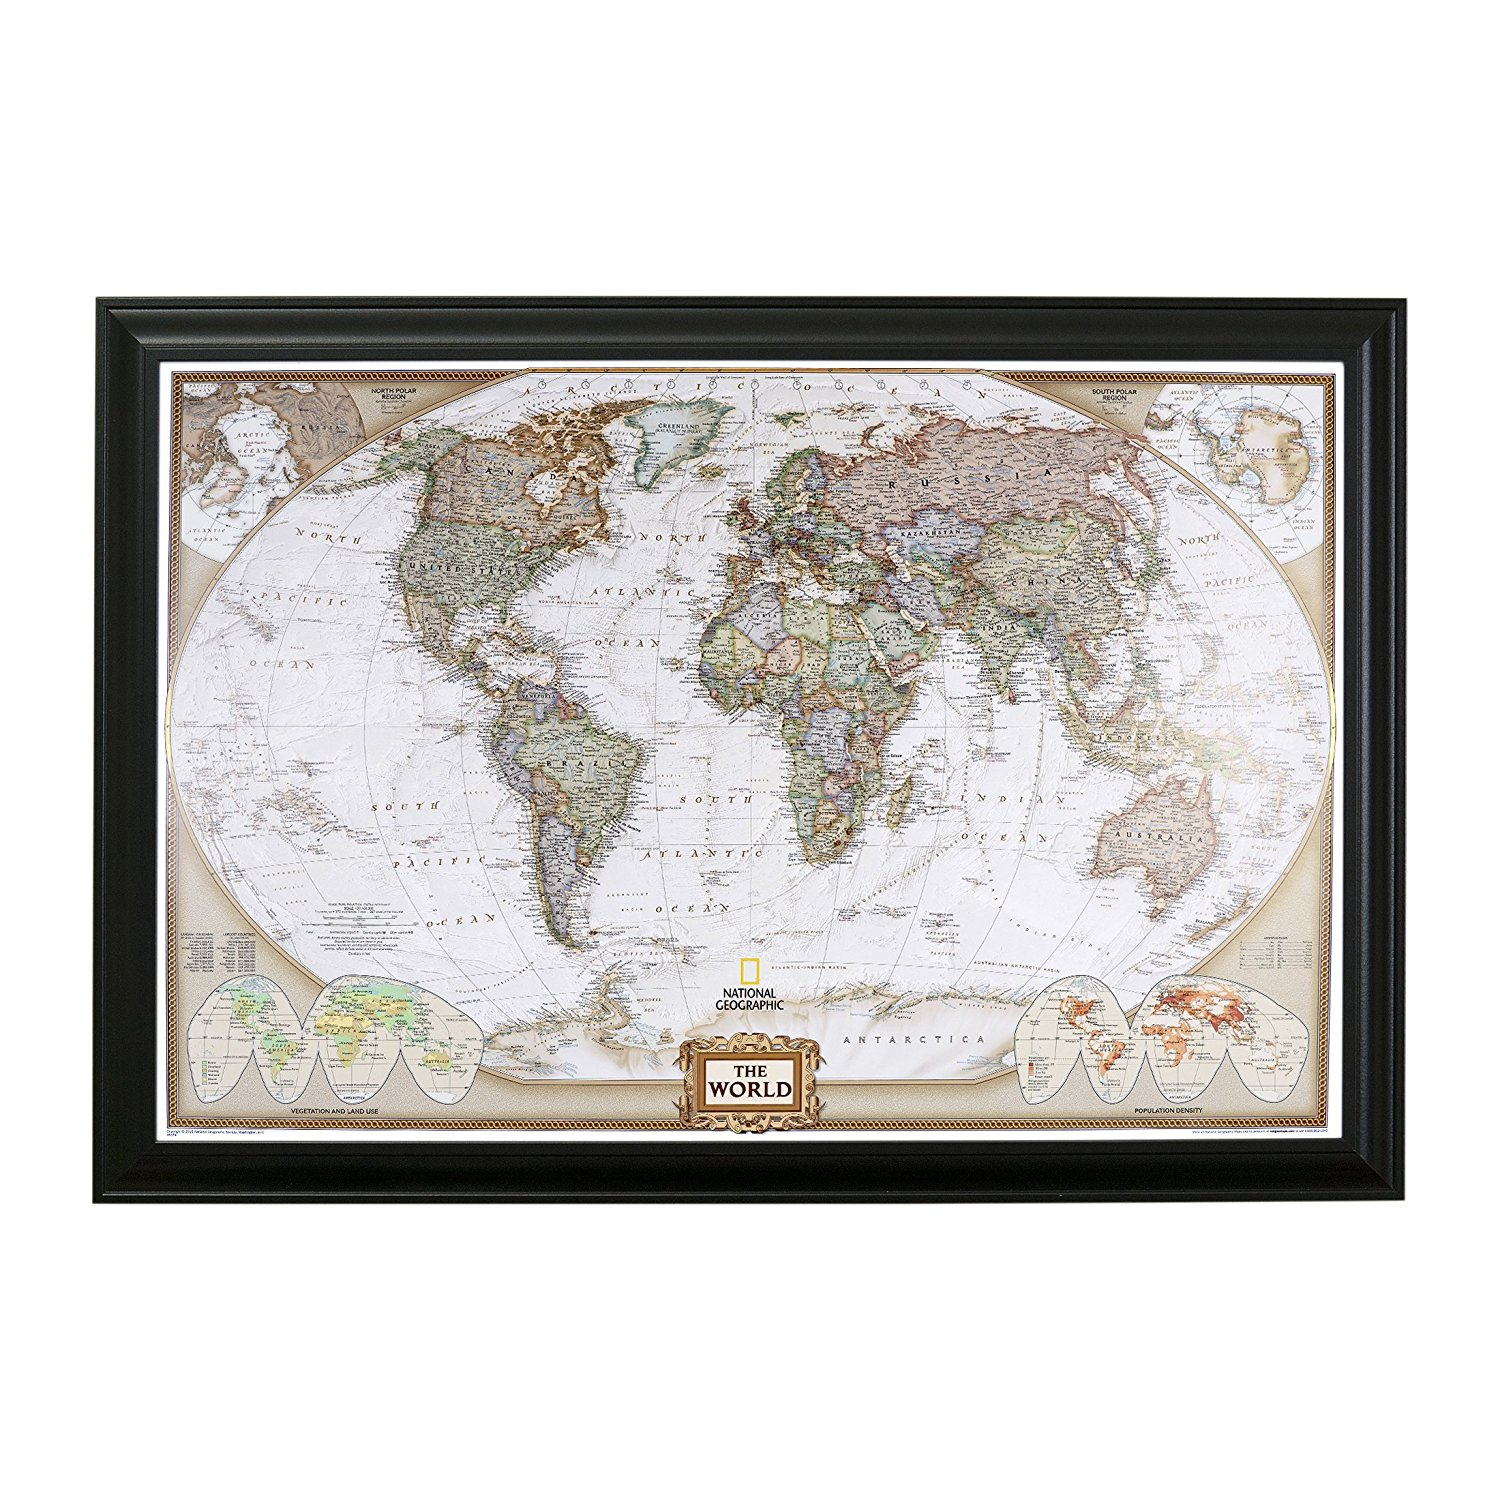 Push Pin Travel Maps Executive World Personalized Map with Pins – Available in 16 Frame Colors